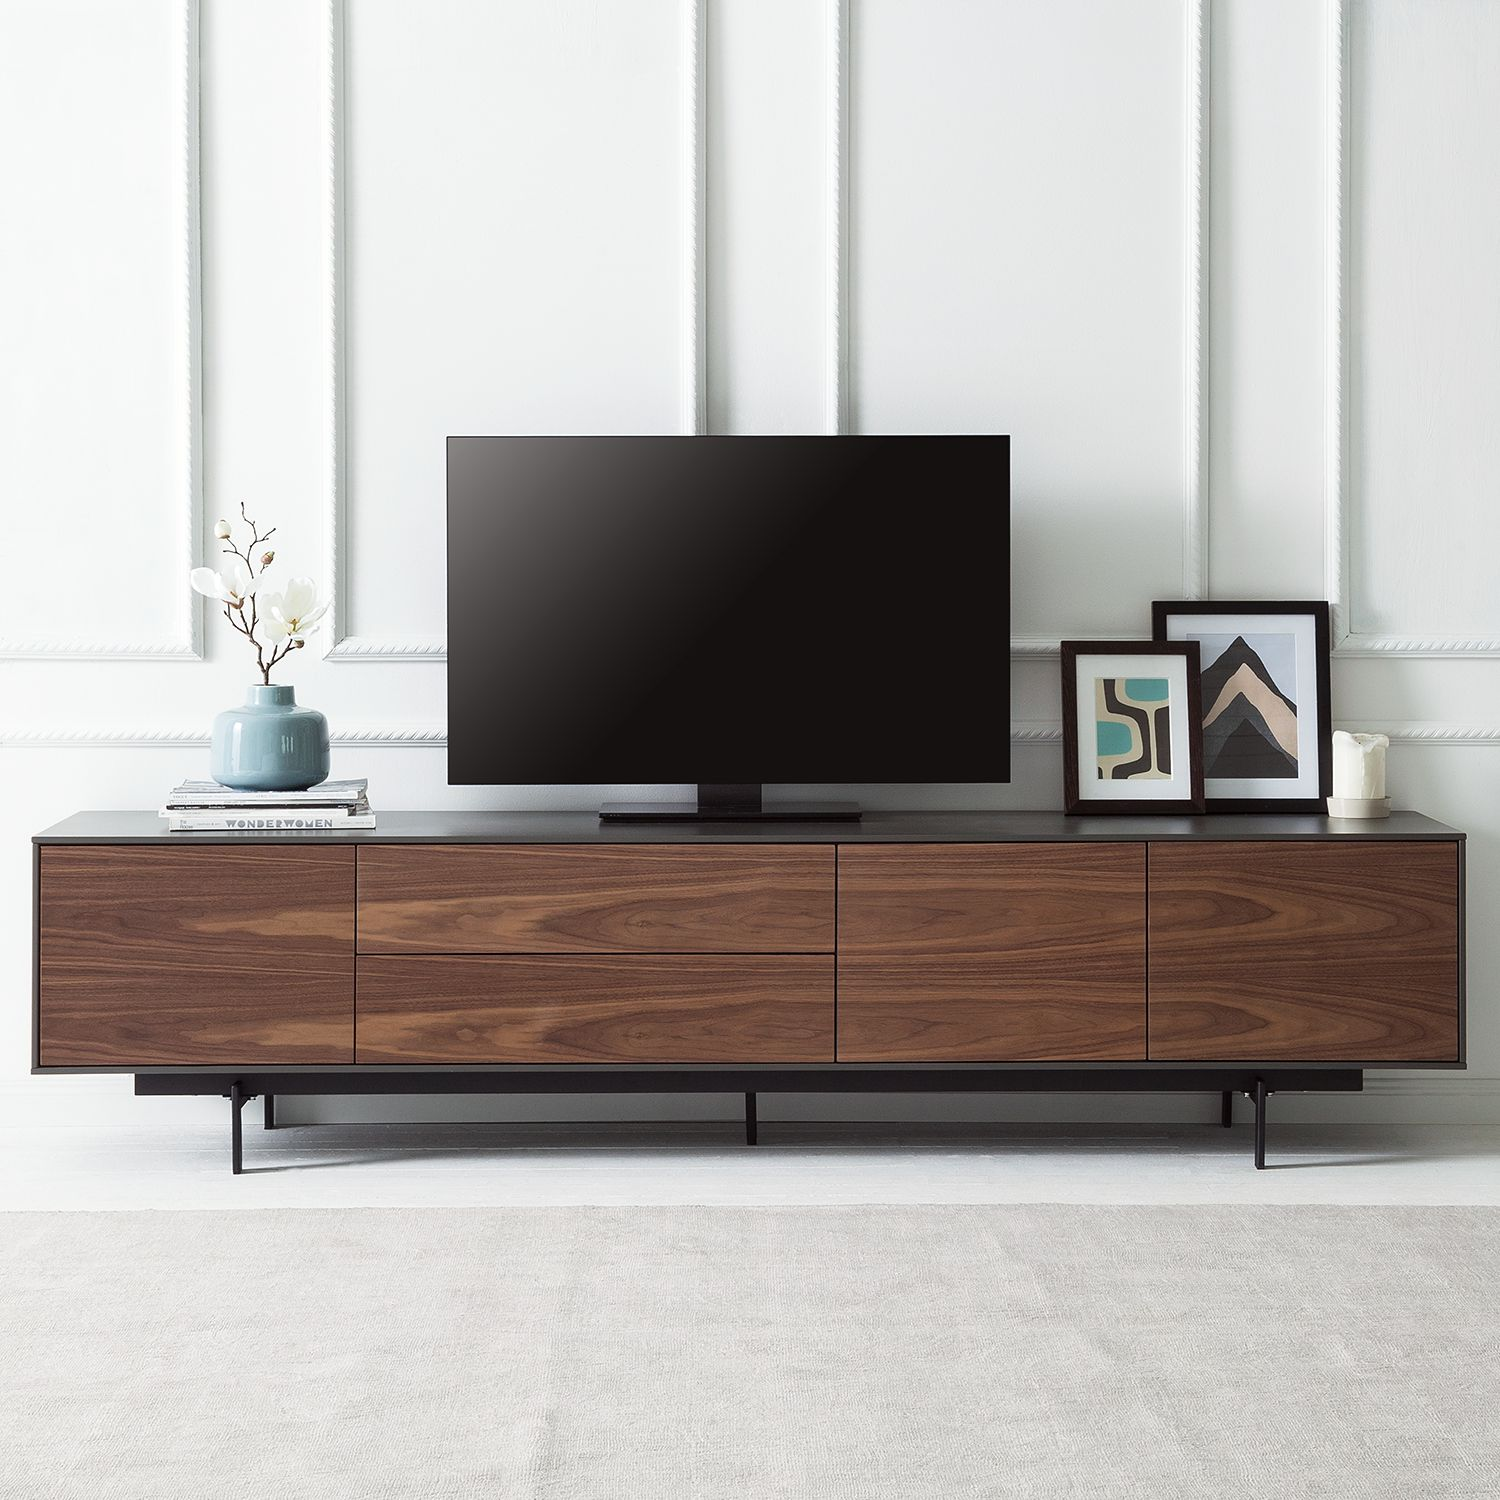 29 sparen tv lowboard payara von studio copenhagen nur 499 99 cherry m bel home24. Black Bedroom Furniture Sets. Home Design Ideas